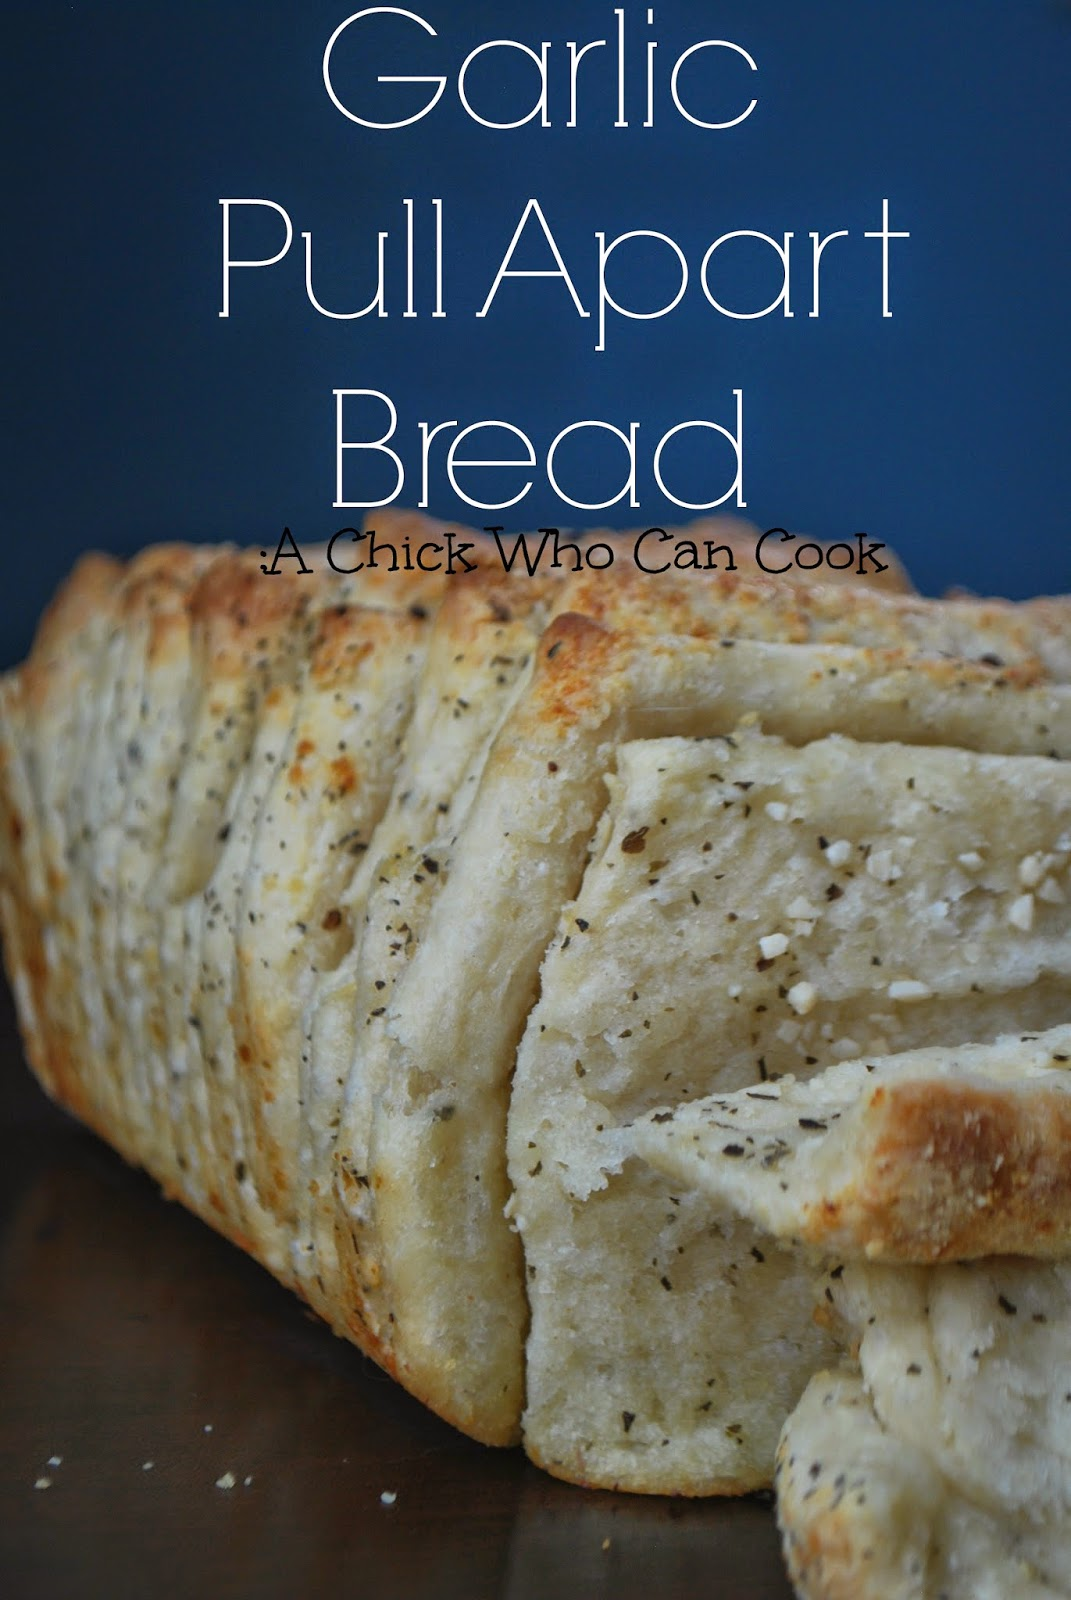 A Chick Who Can Cook: Garlic Pull Apart Bread